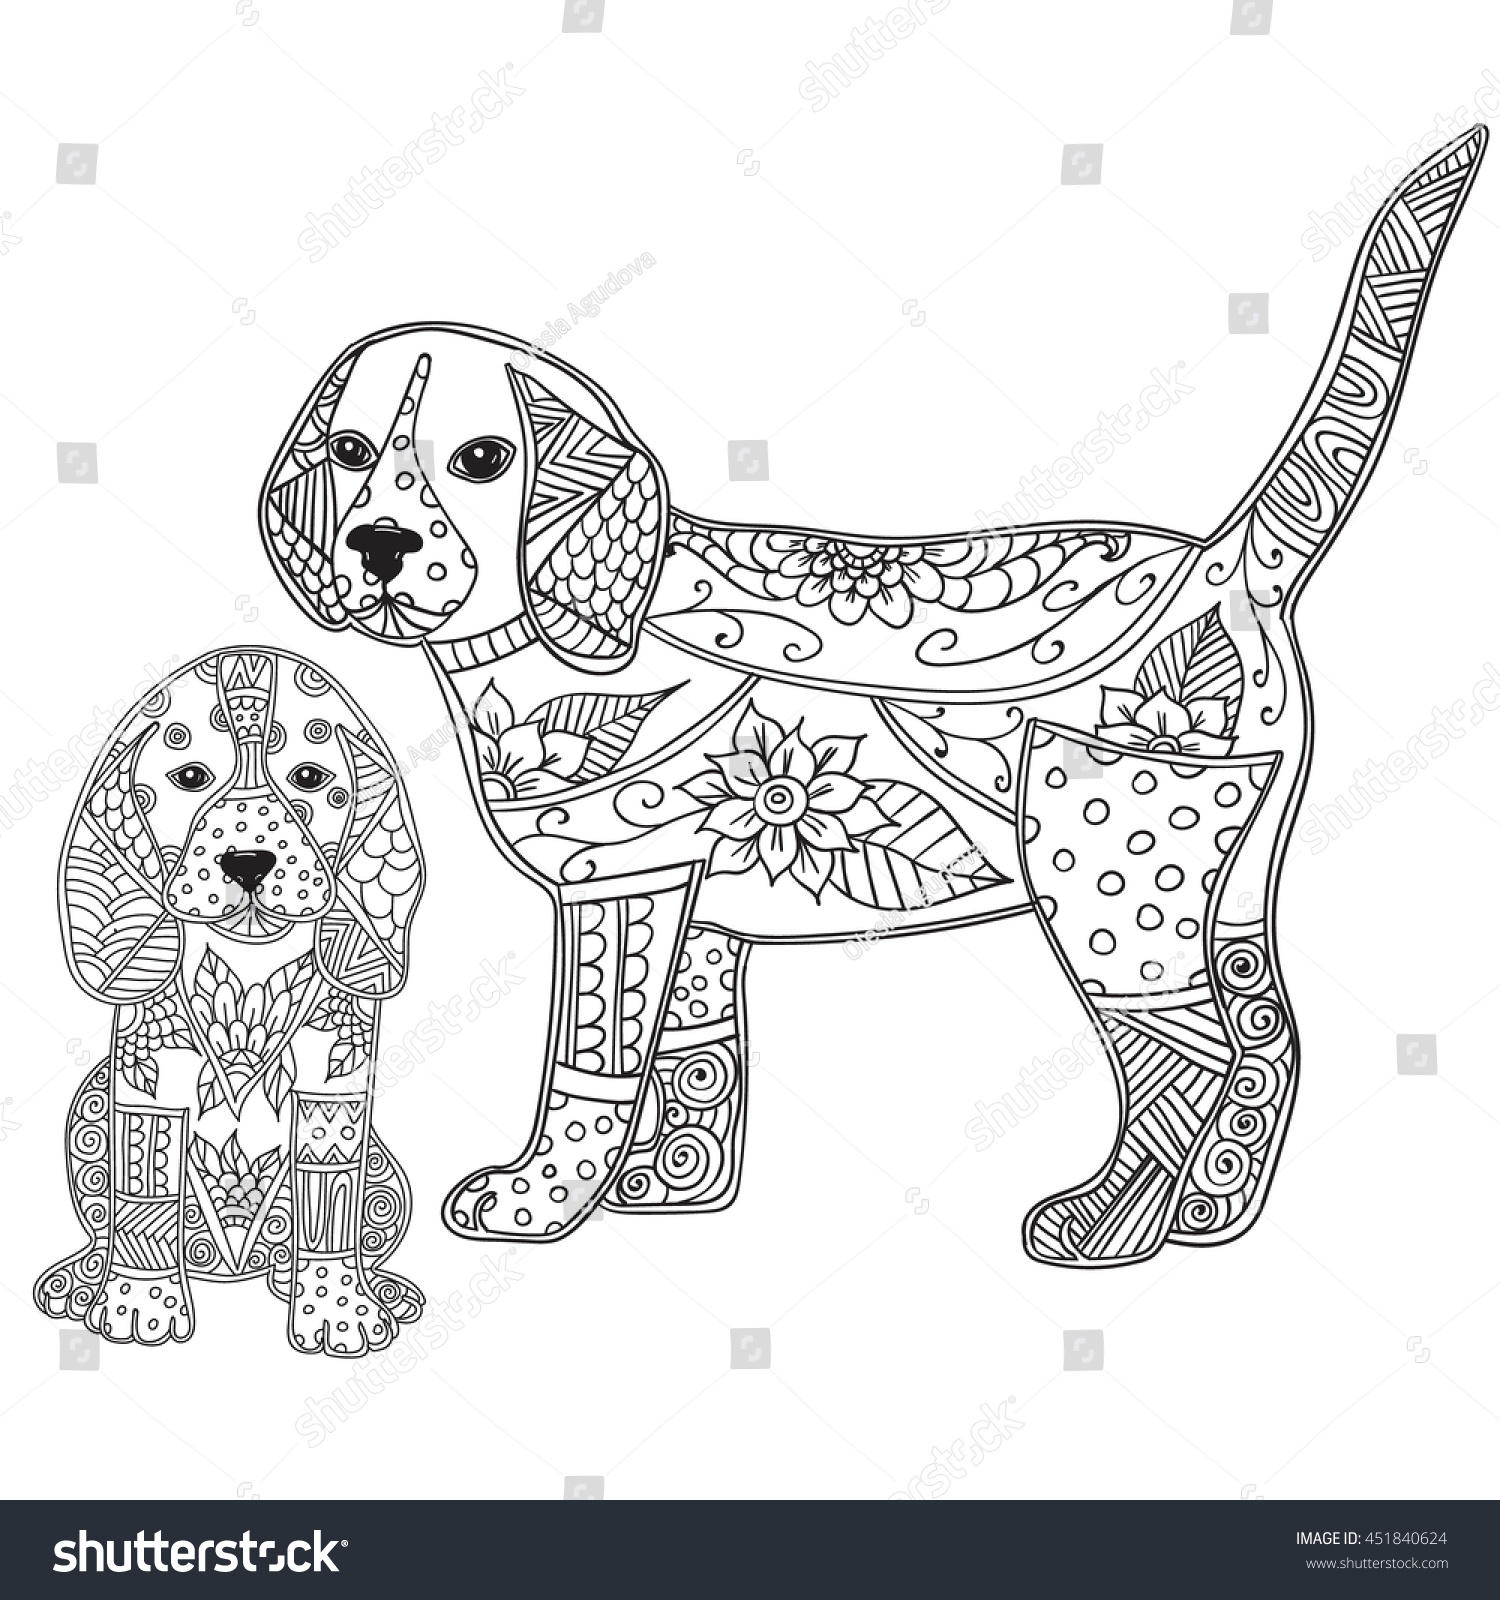 Posters Of Dogs Coloring For AdultsOfPrintable Coloring Pages